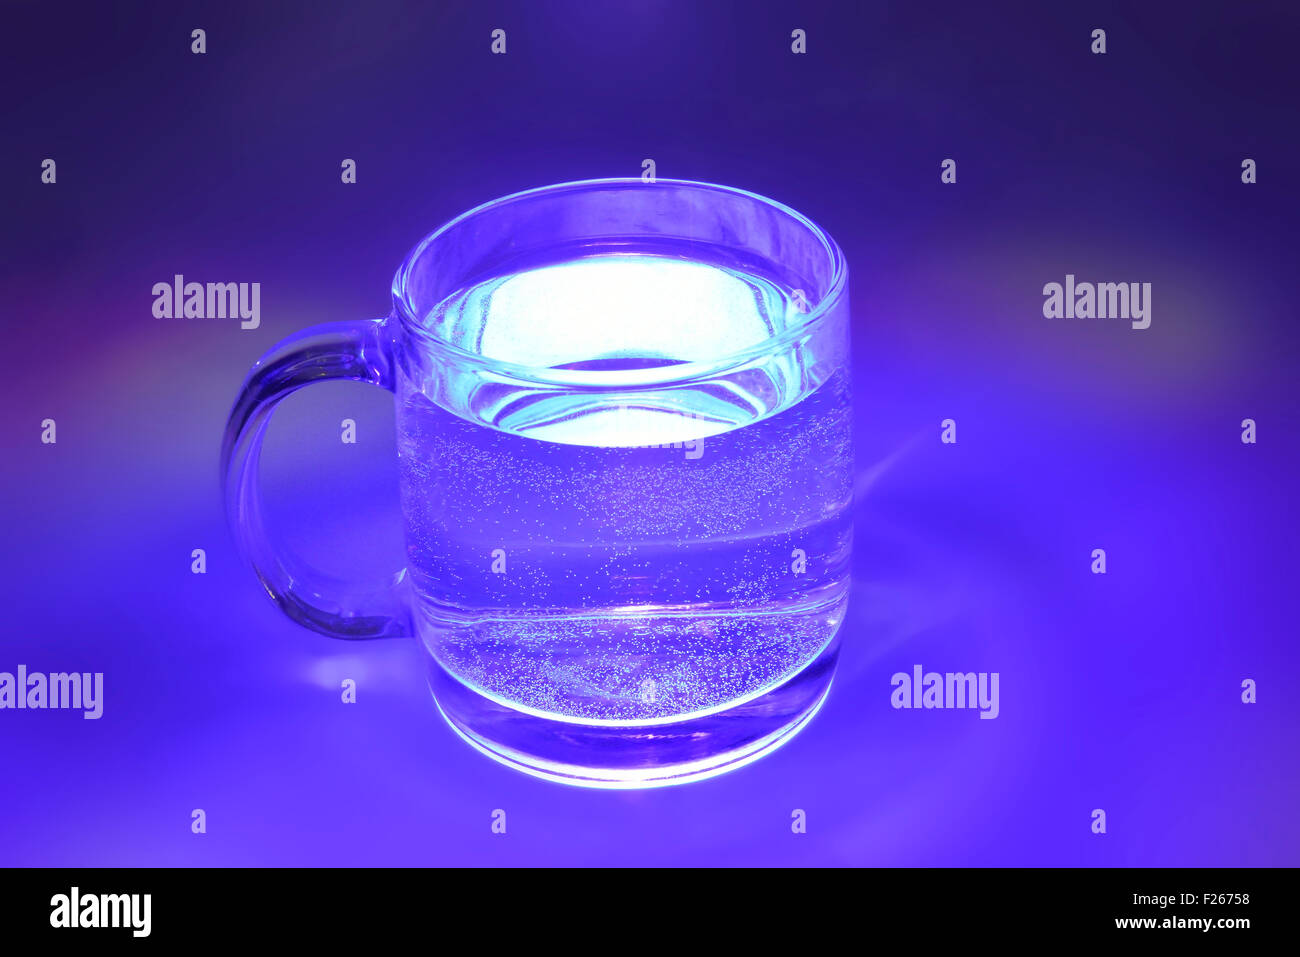 magic blue transparent cup with water - Stock Image